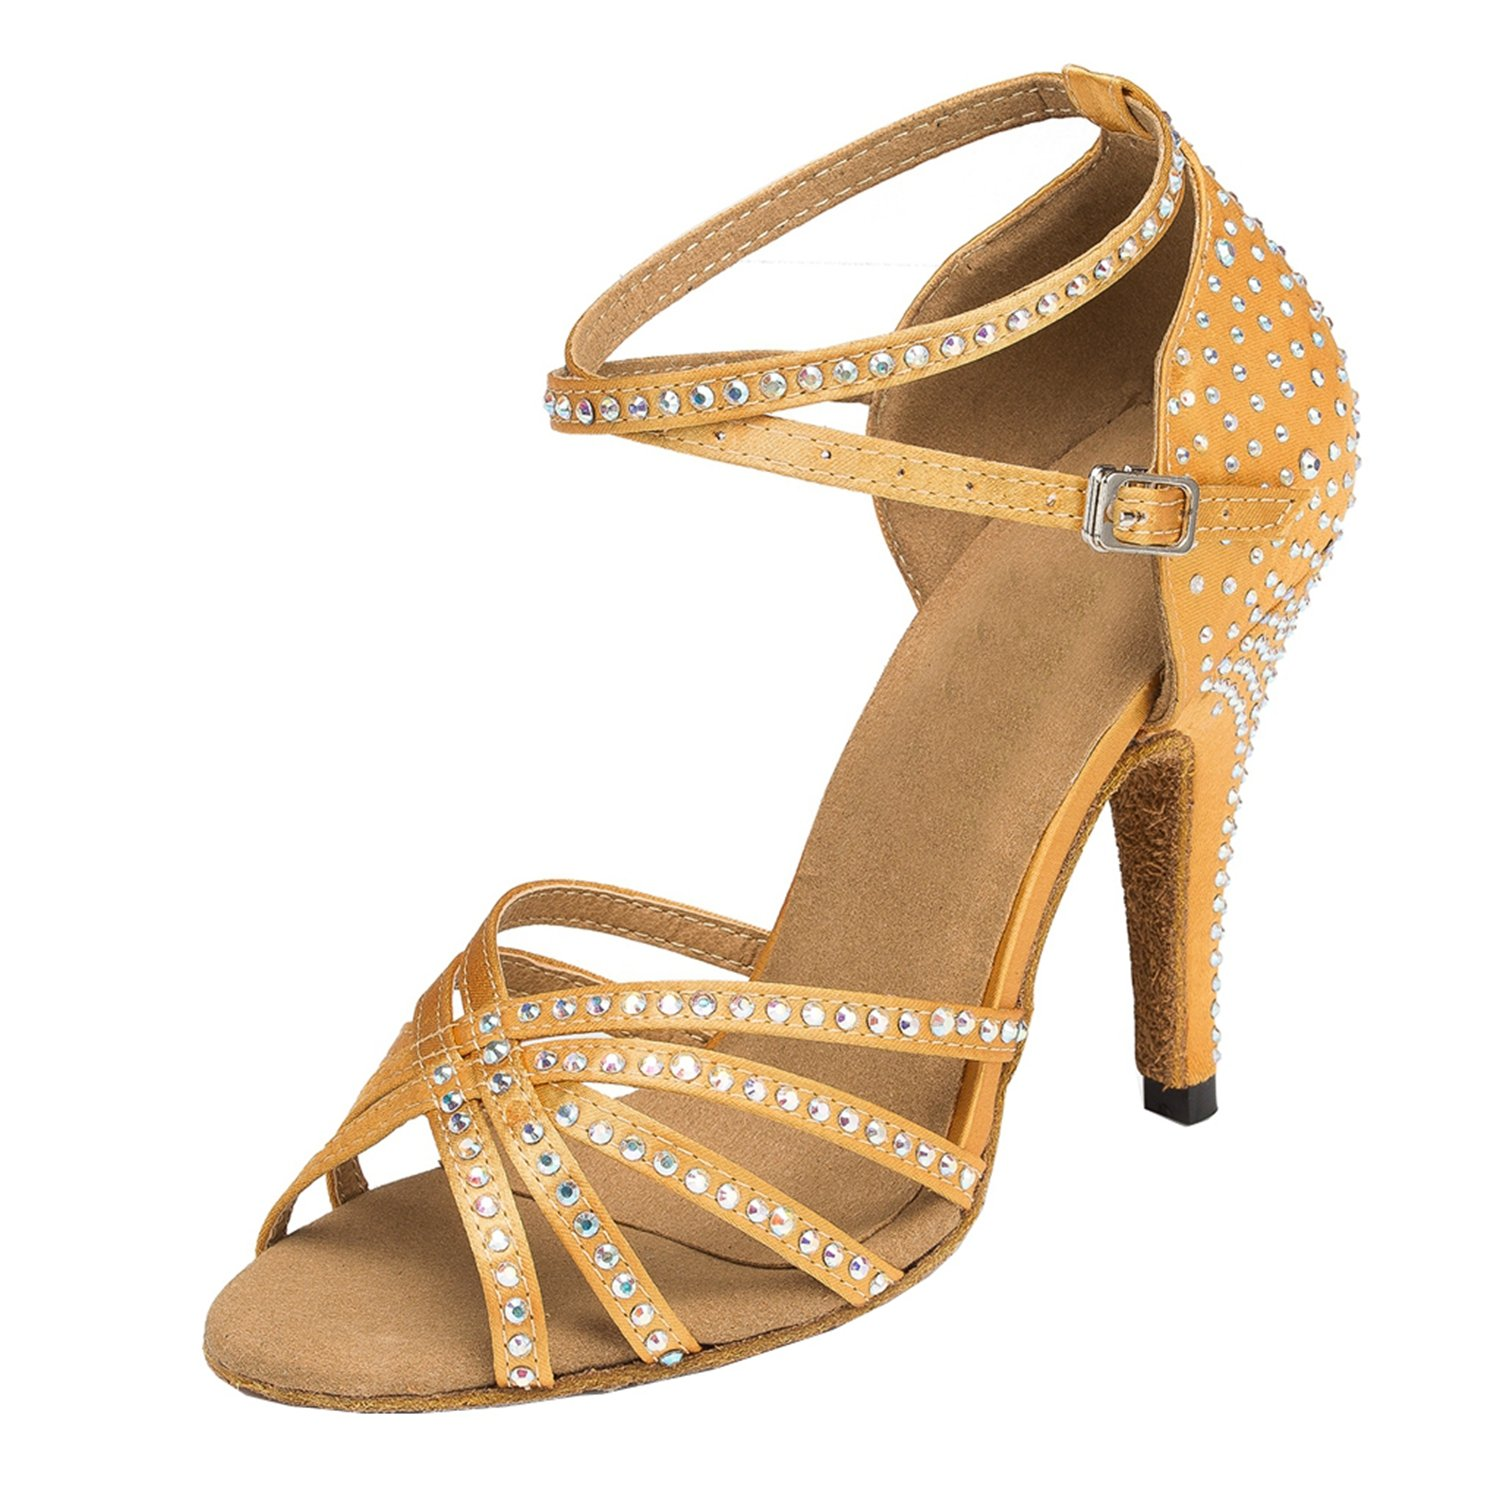 Minitoo Femme Th154 Sandales Cristaux Croix marron, Sangle en B00KAPG7V6 satin pour mariage piste de danse latine Taogo Dance Sandales - Marron - marron, - ac69533 - latesttechnology.space